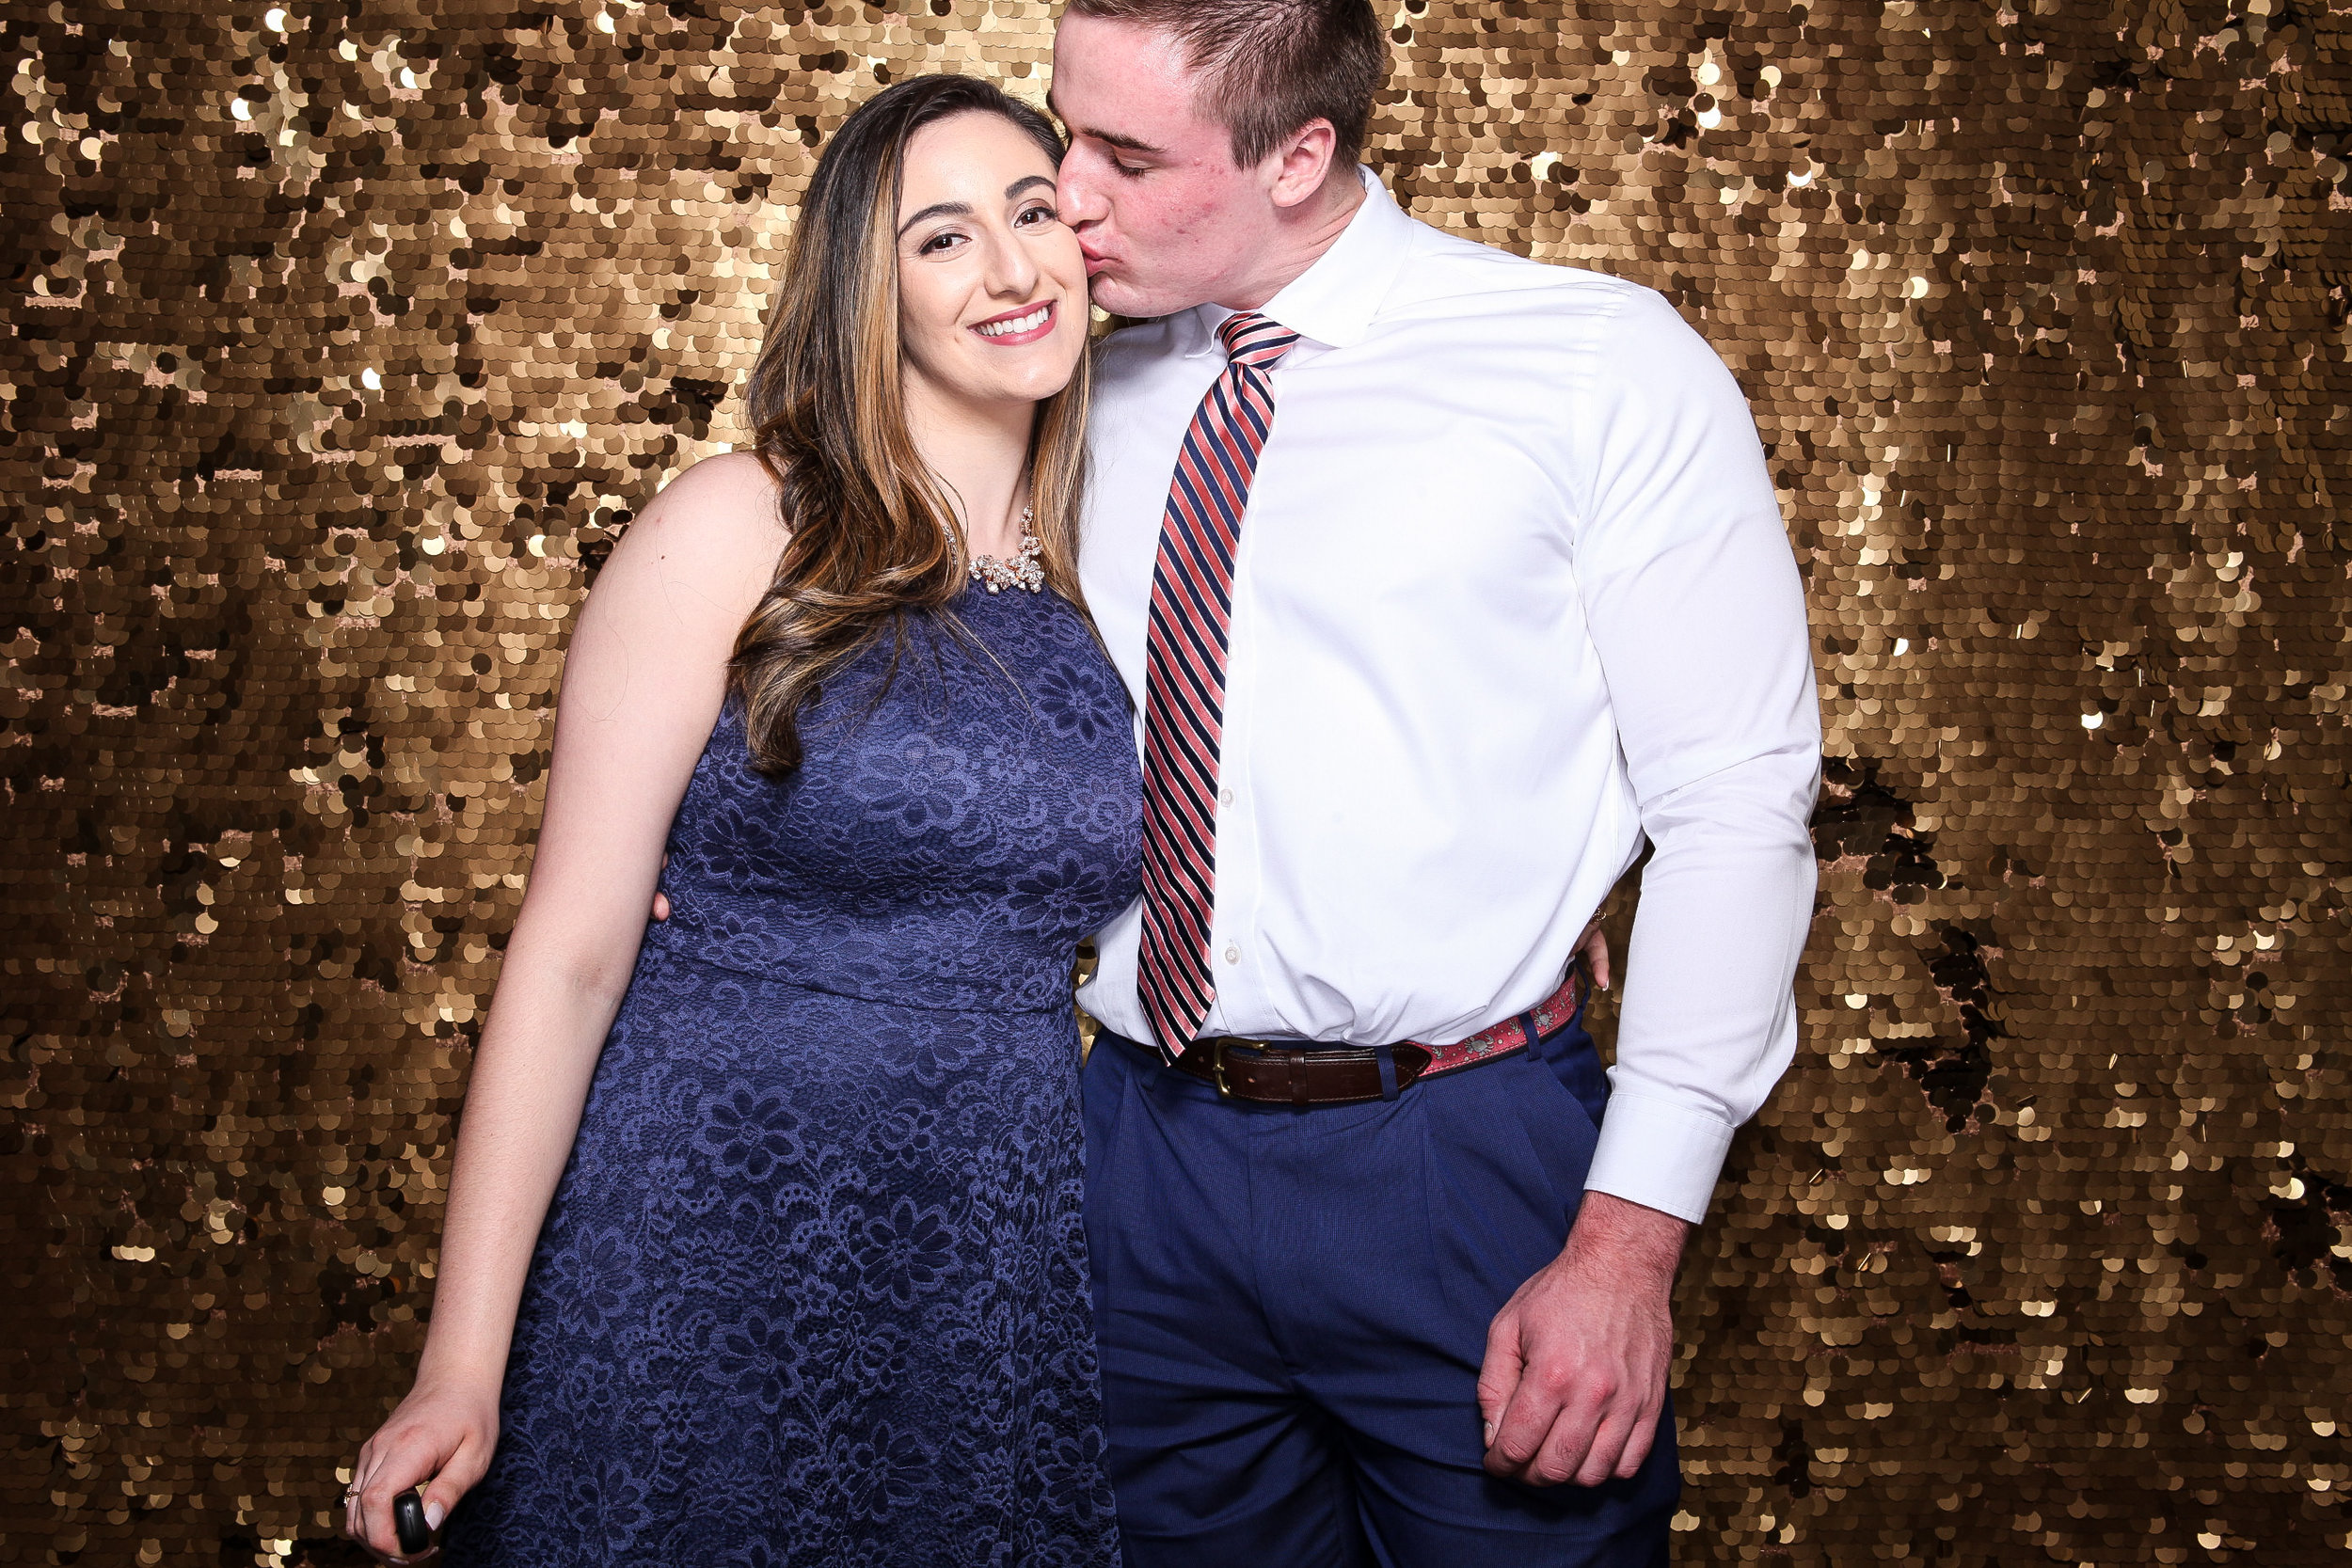 20190503_Adelphi_Senior_Formal-314.jpg